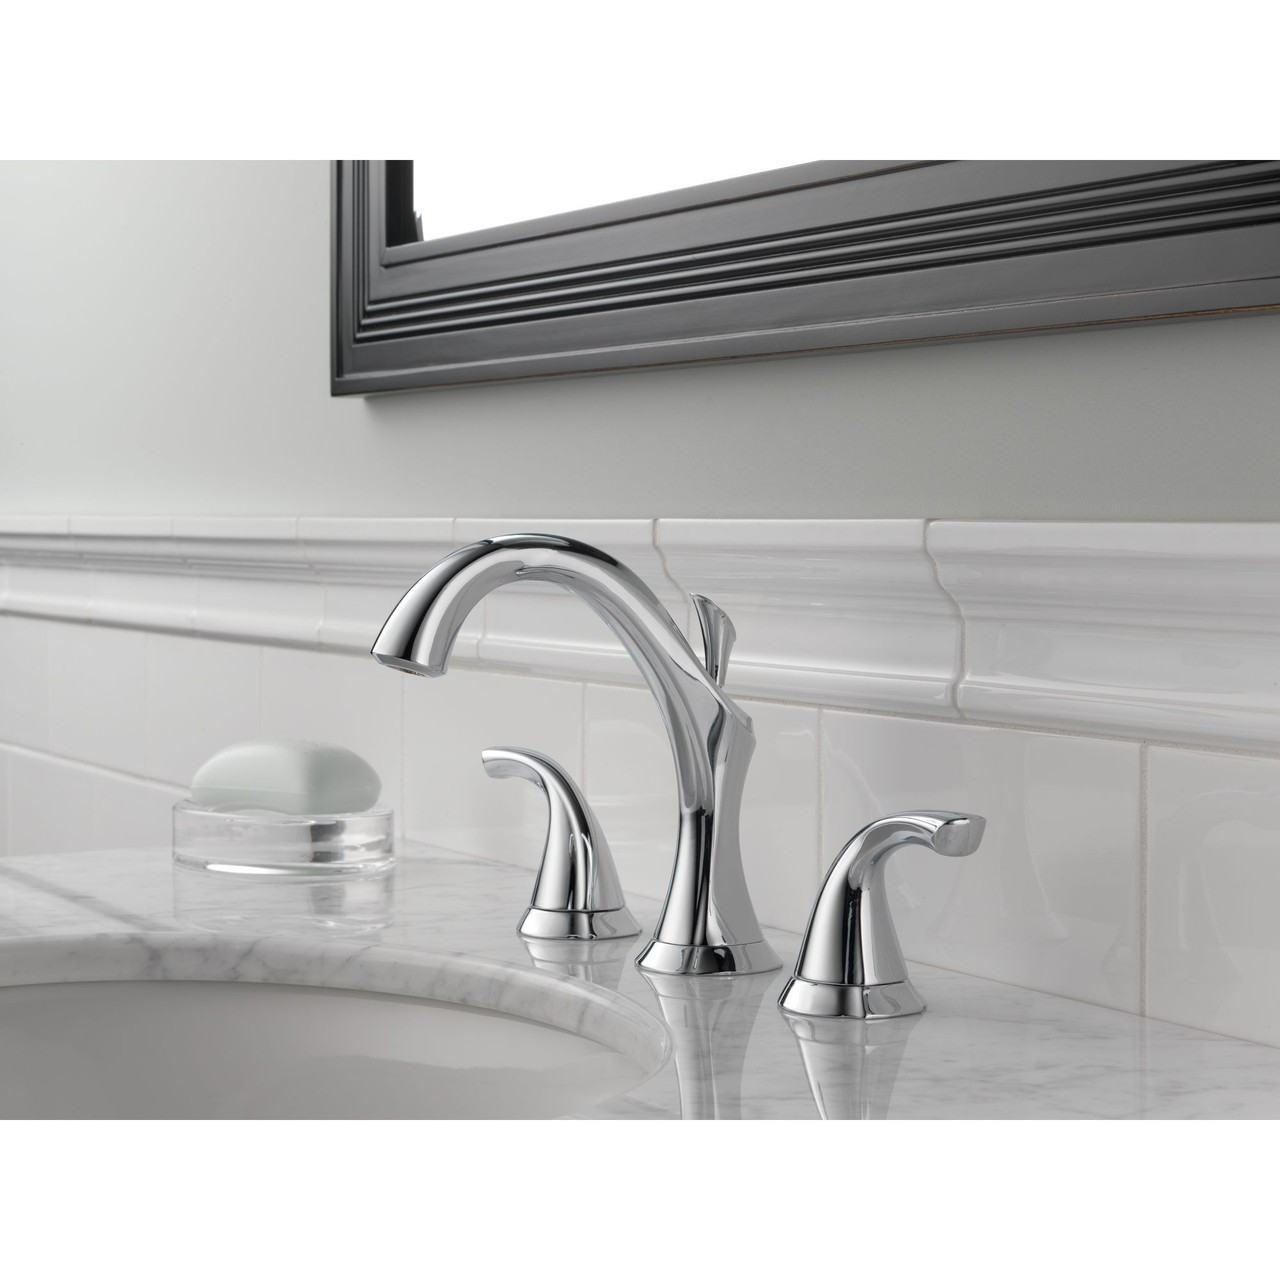 Addison Delta Bathroom Faucet: Delta Addison Two Handle Widespread Lavatory Faucet In